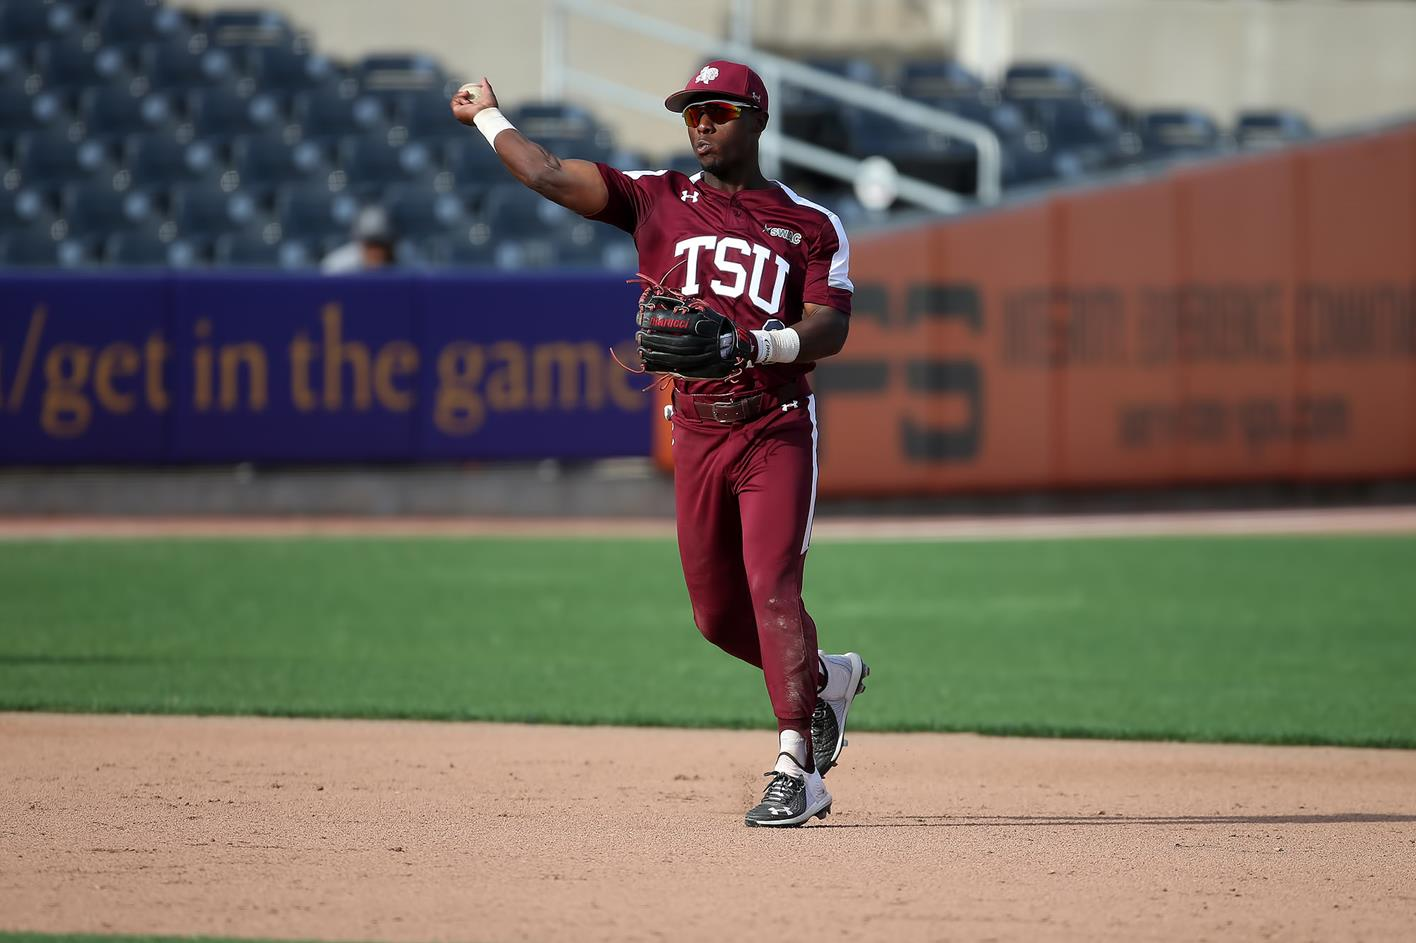 <div>Baseball's Season Comes To A Close After Pitching Duel</div>